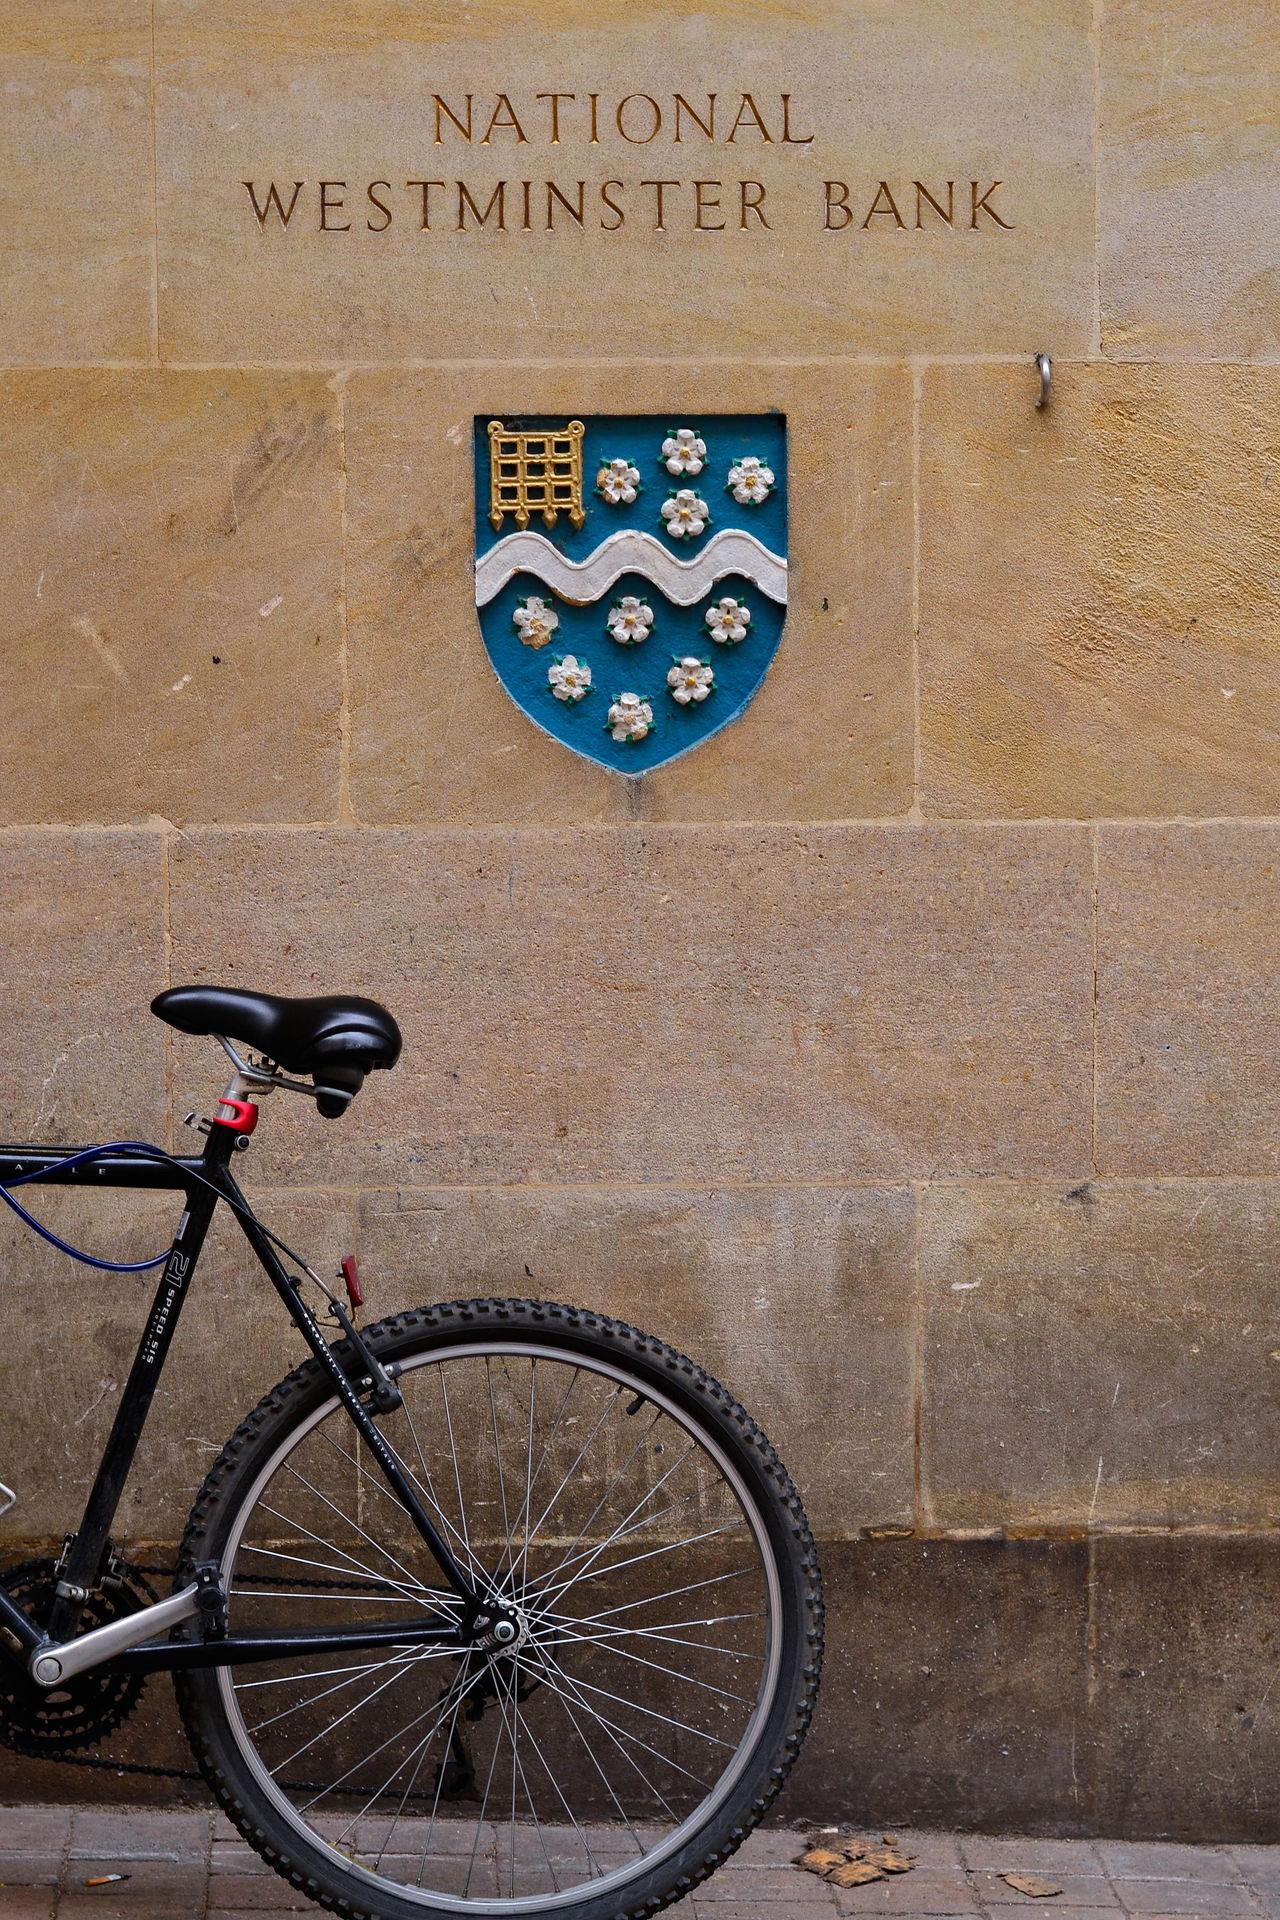 Bicycle Blue Cycling England Heraldry Wall Westminster